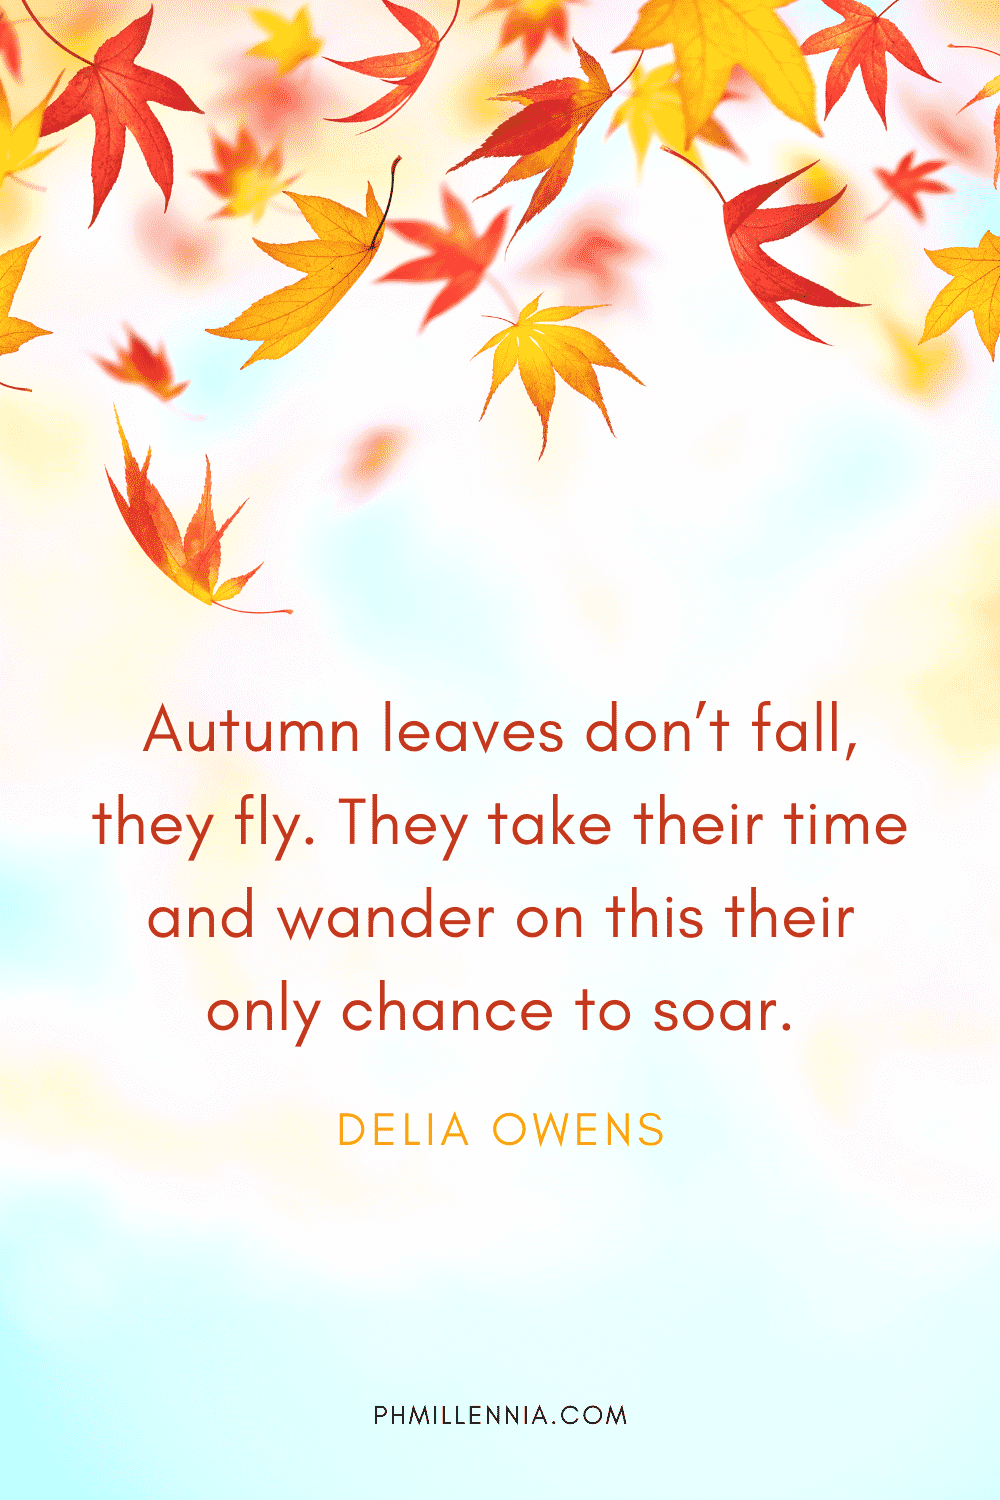 """A graphic featuring an autumn quote/fall saying over an image of red, yellow, orange autumn/fall leaves drifting downwards, designed as a Pinterest Pin for the article """"199 Autumn Quotes to Fall Deeply and Spectacularly in Love With"""" on phmillennia.com"""